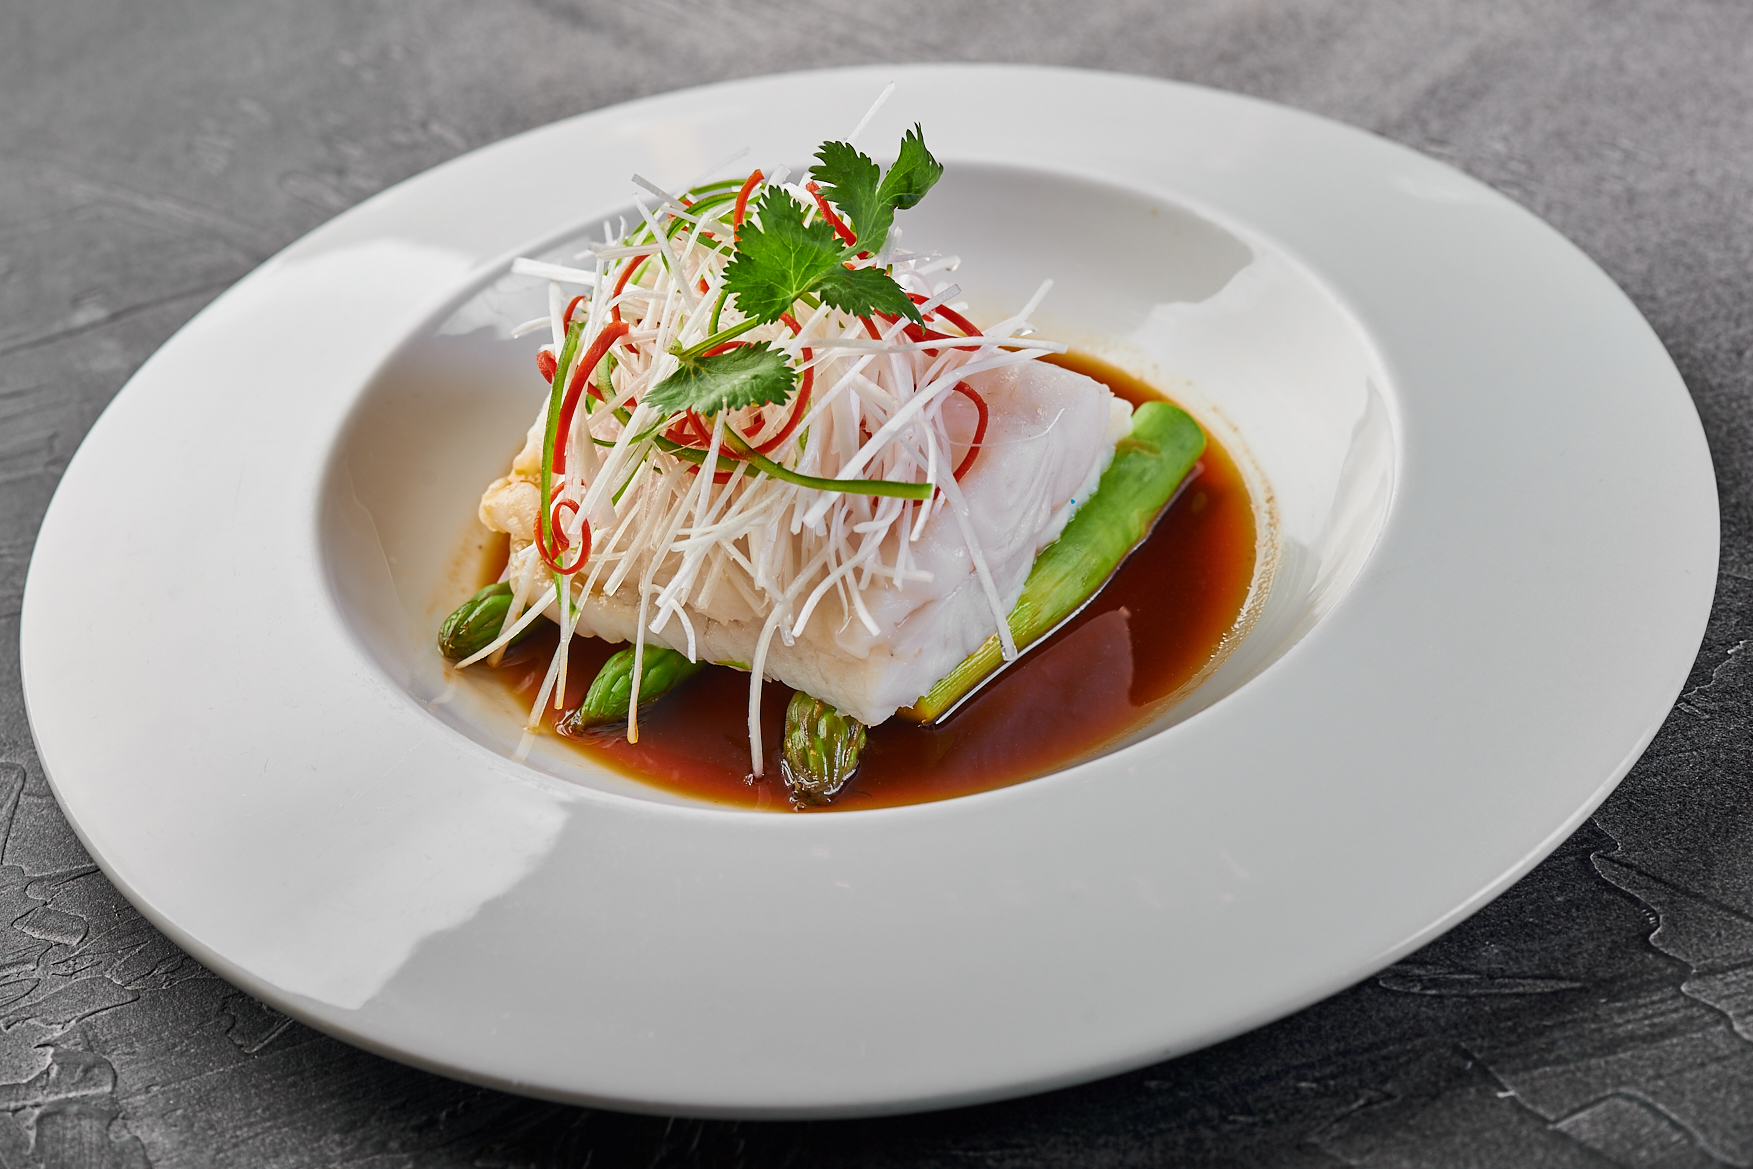 Fish steamed with asparagus 2600₽